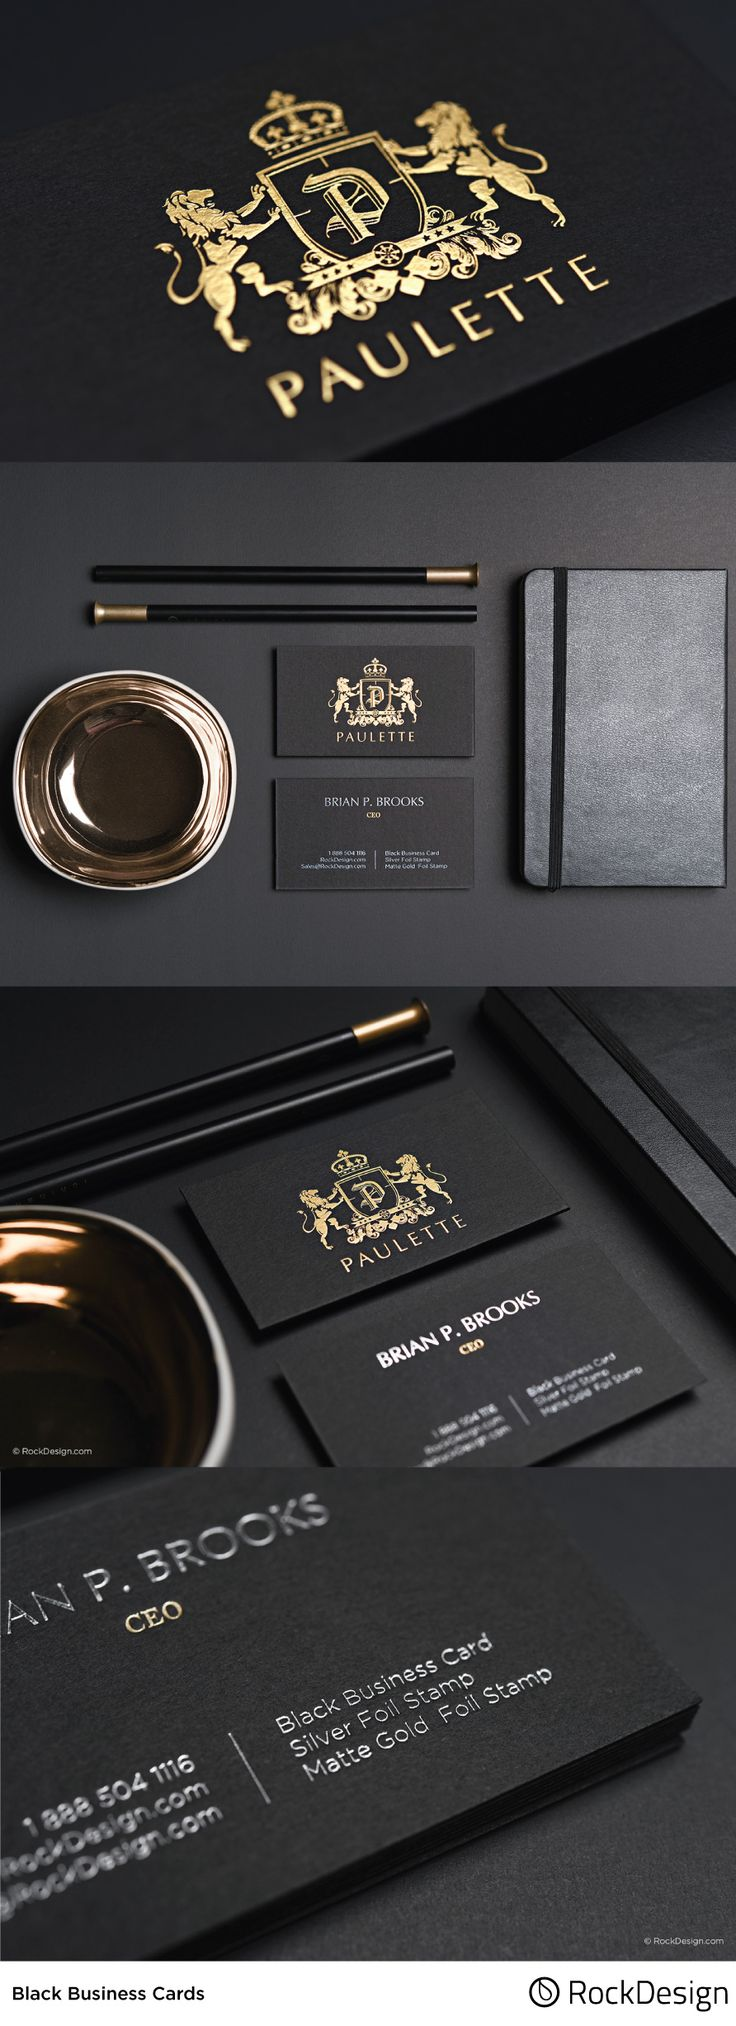 When utilizing high quality products, simplicity is always anexcellent way to go. Our Paulette template is a beautiful take on a classic business card layout, capturing a truly elegant design by combining our flawless matte gold with our exquisite regular silver foil.